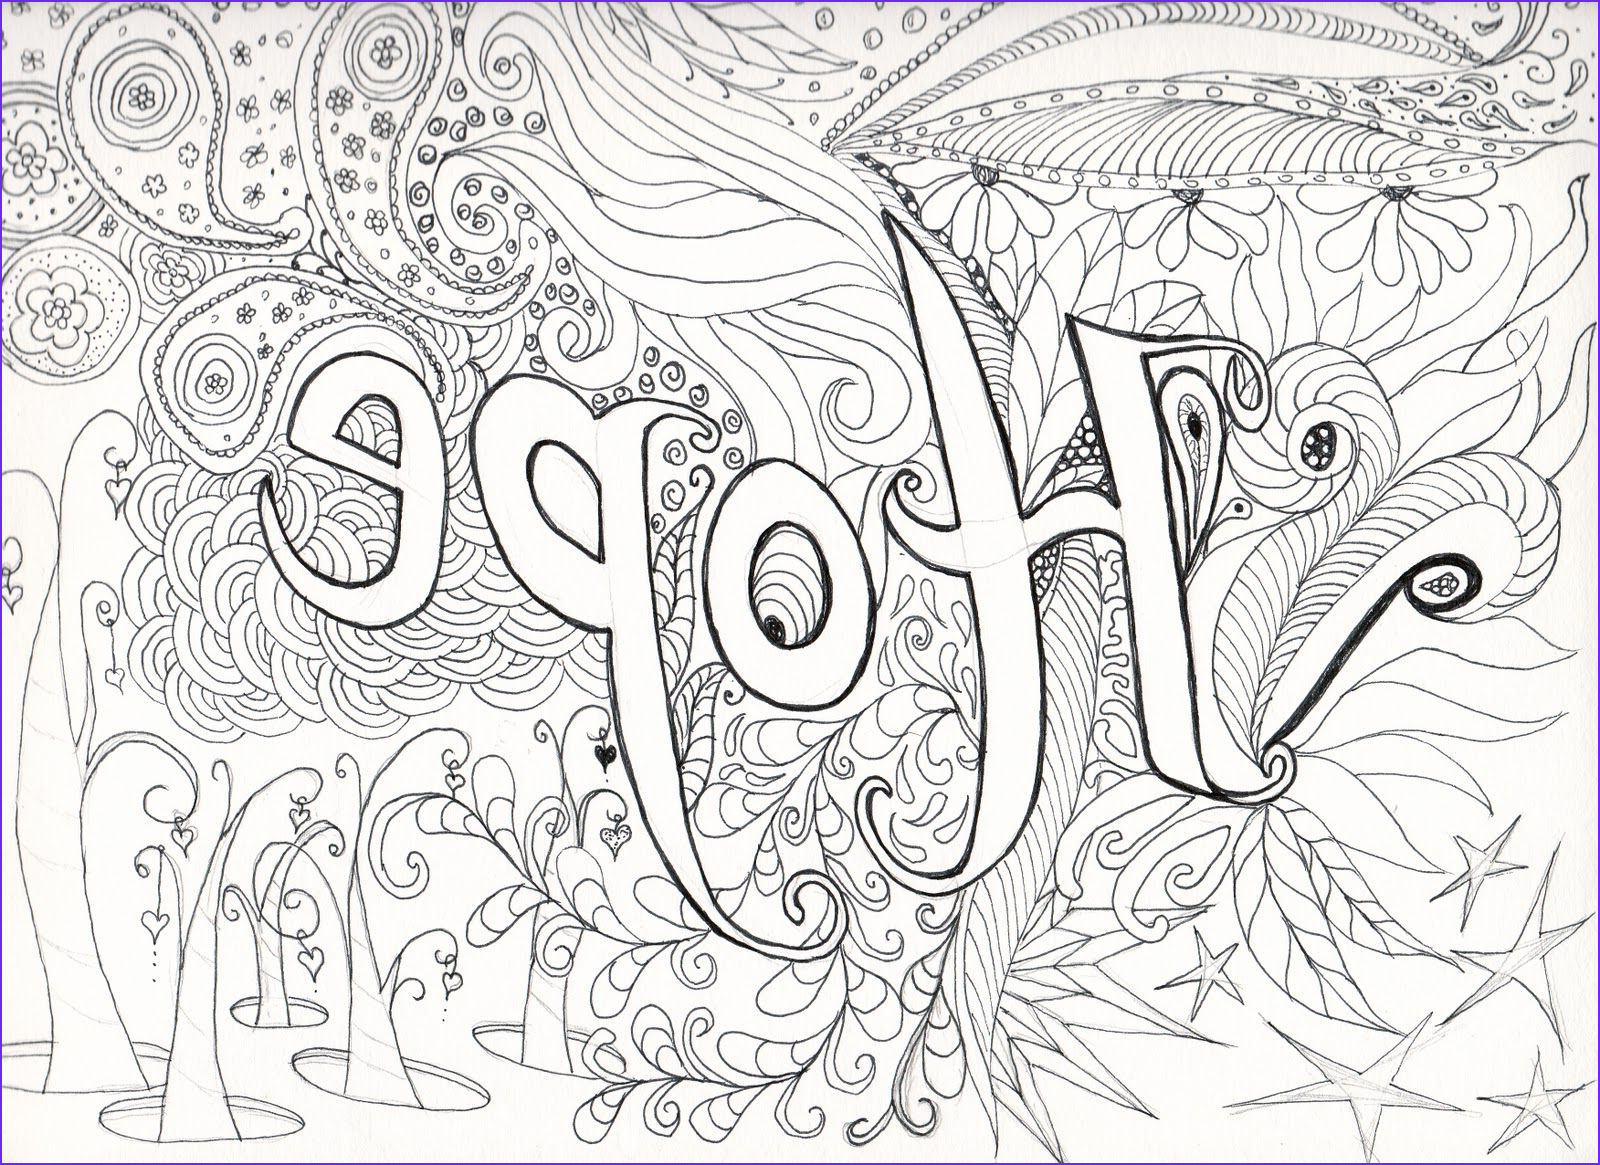 Advanced Coloring Books Elegant Photography Very Advanced Coloring Pages for Adults